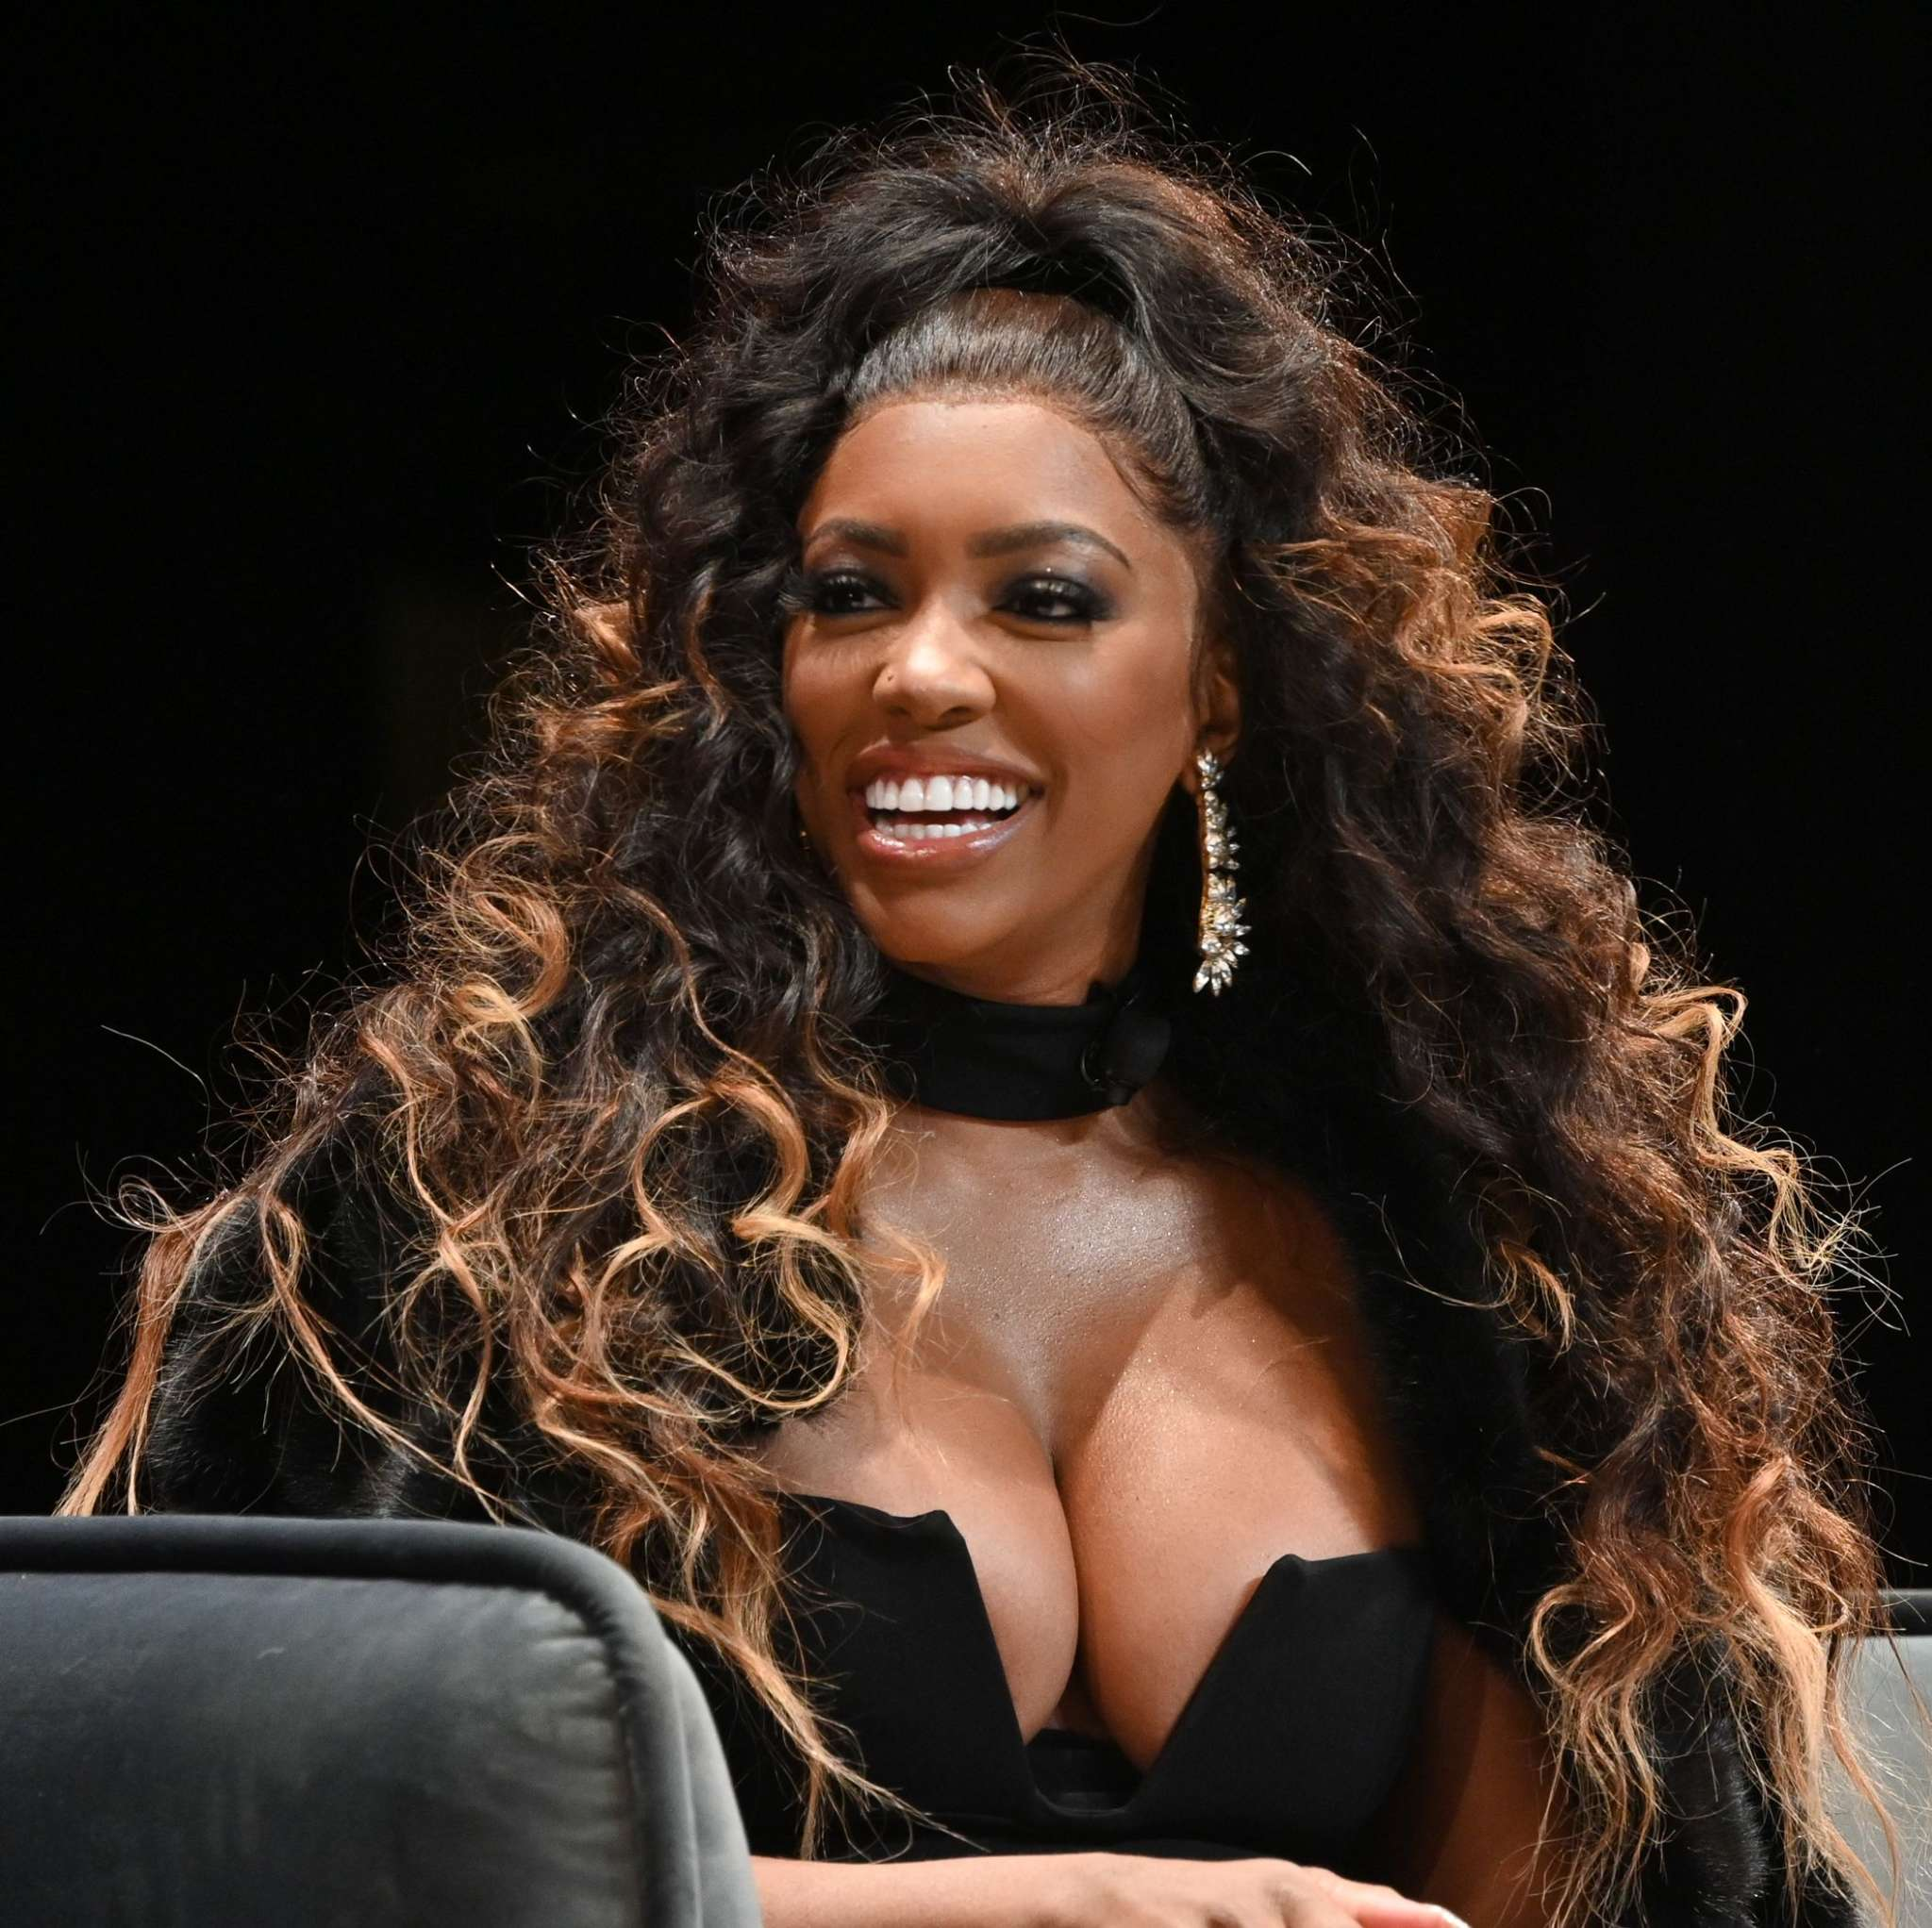 Porsha Williams Shows Off A New Look In Yellow And Some People Are Shocked: 'Did You Go To Kim's Surgeon?'